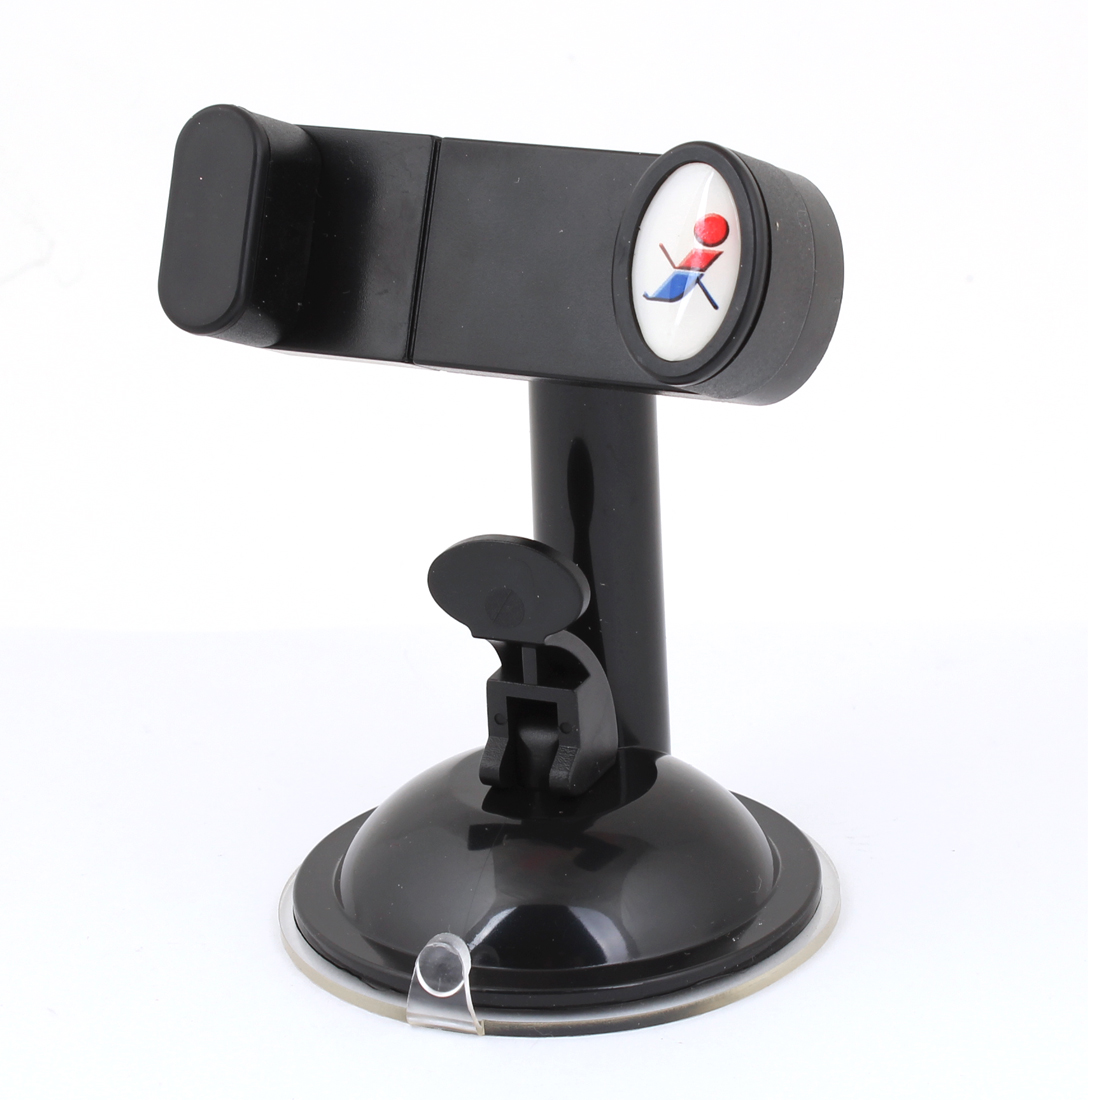 Car Vehicle Black Adhesive Rotated 360 Degrees Smartphone Holder Sucker Stand